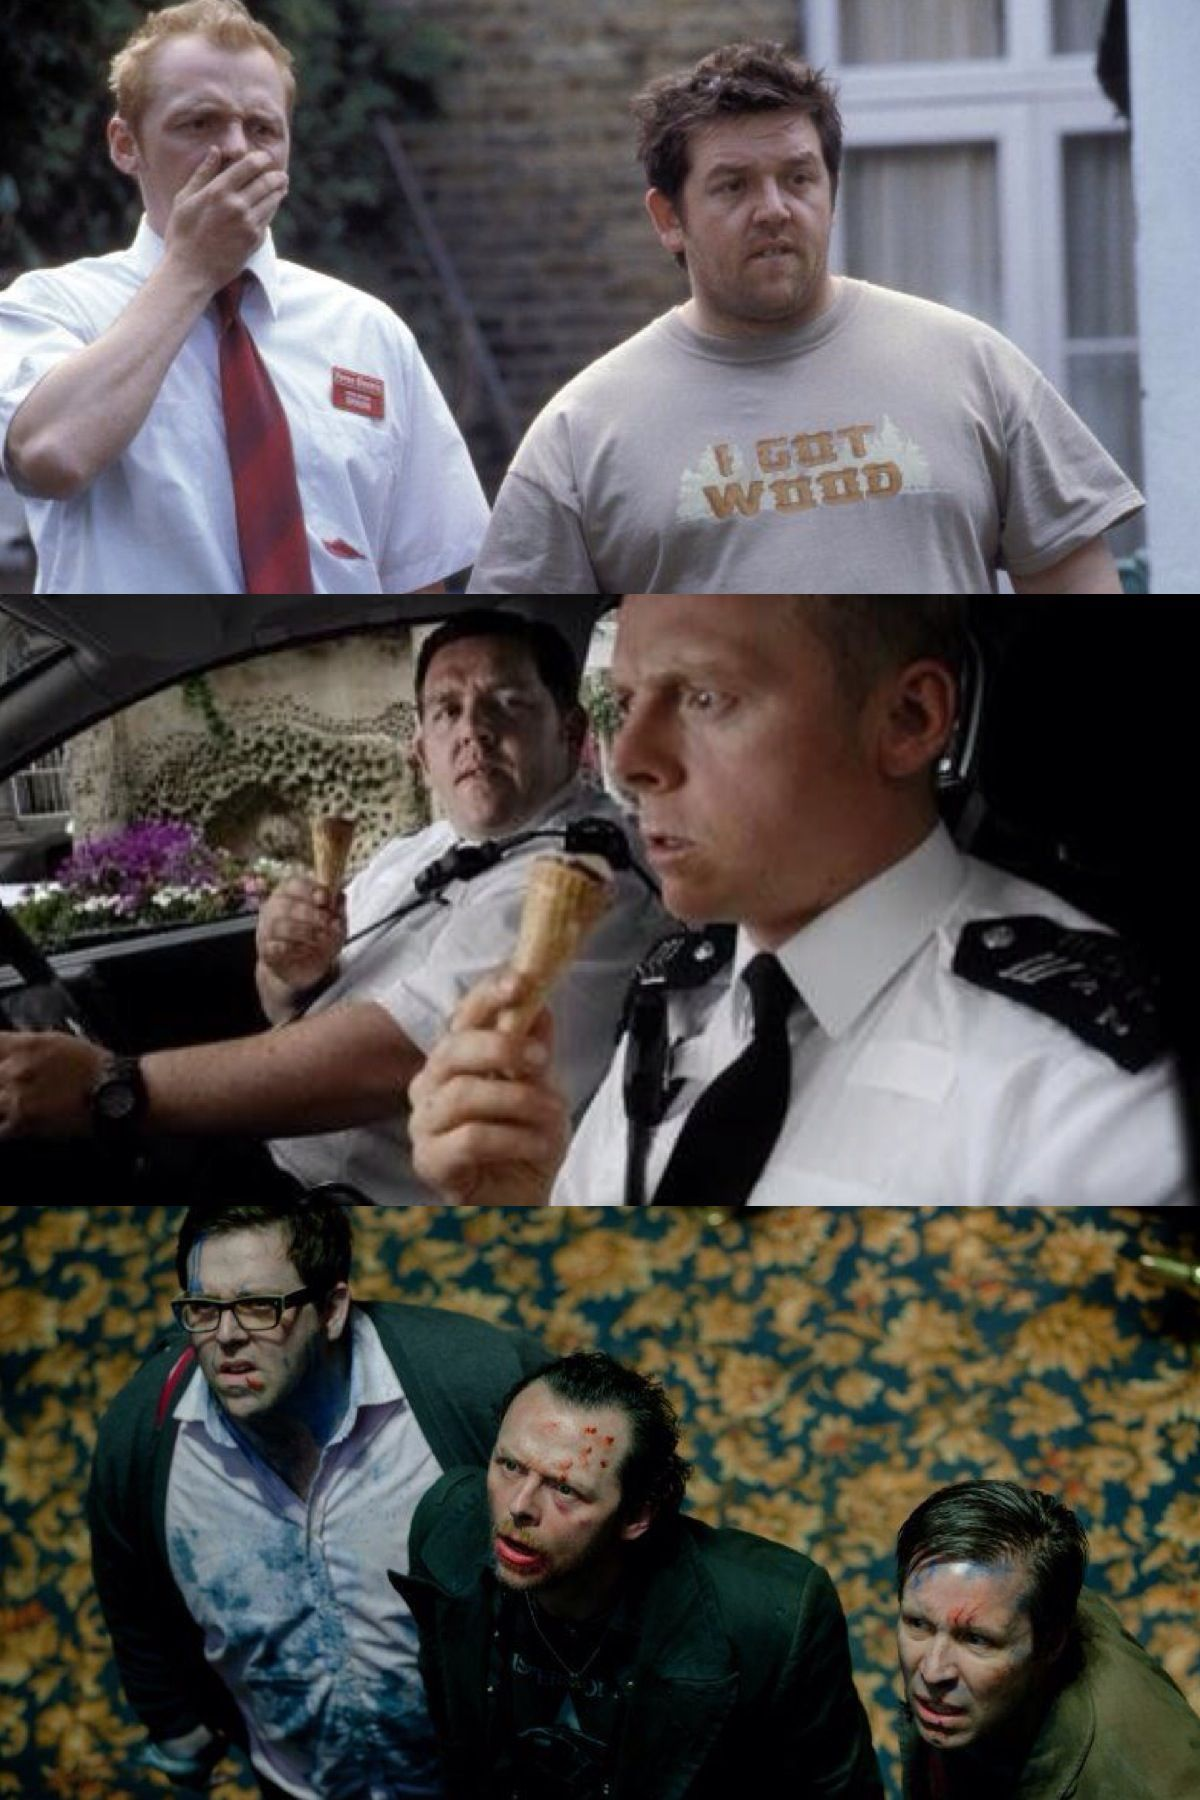 The Cornetto Trilogy Shaun of the Dead Hot Fuzz The World's End Directed by  Edgar Wright. Starring Simon Pegg and Nick Frost